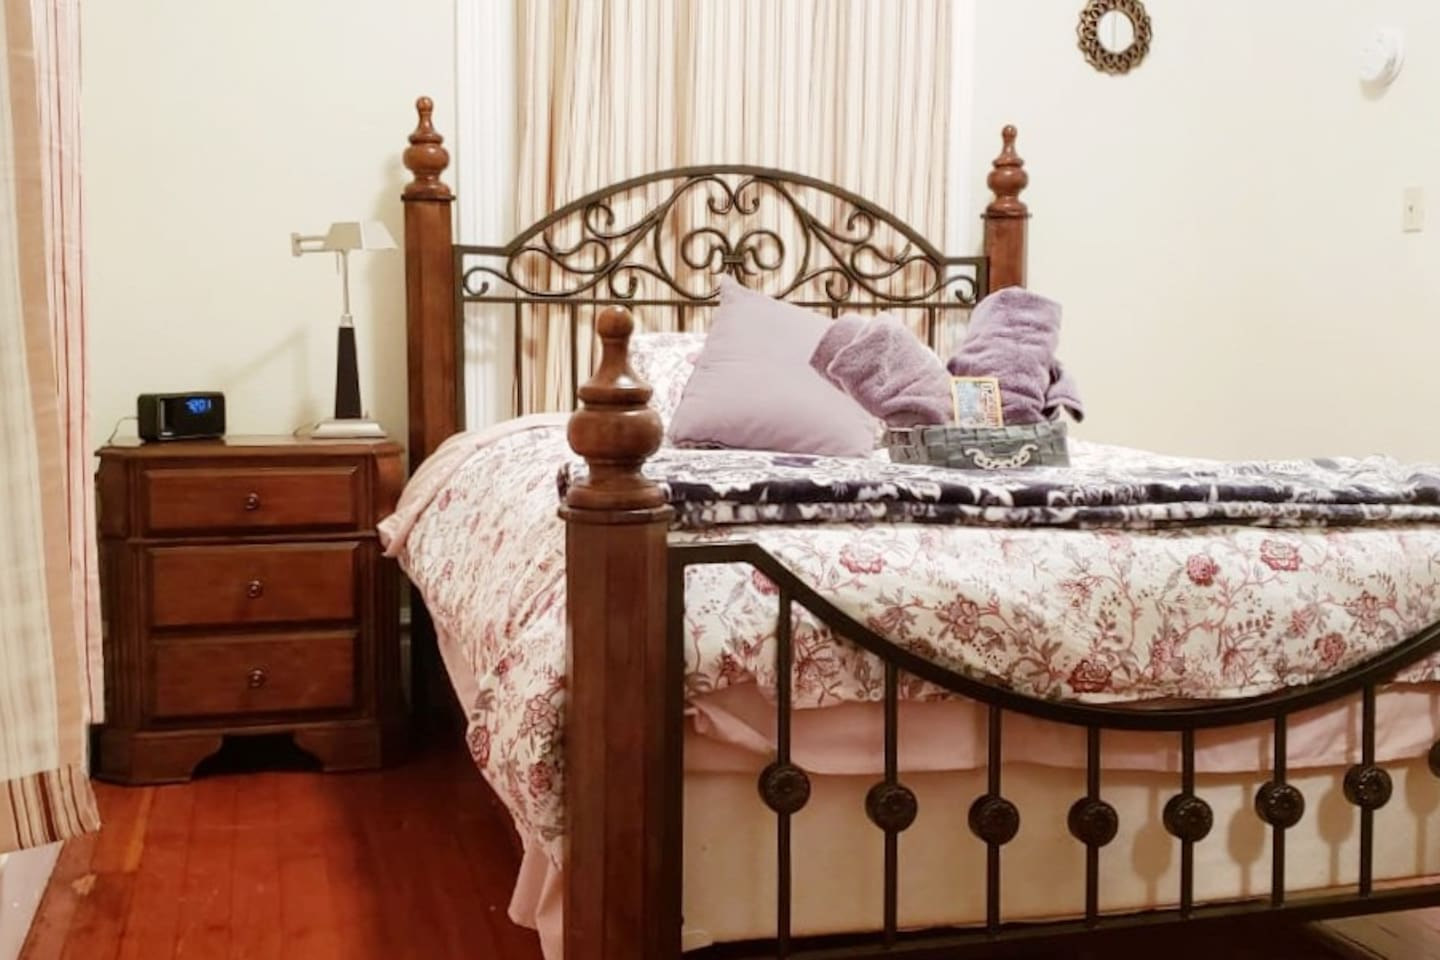 Norman's Quarters has a lovely Victorian wood and metal queen size bed.